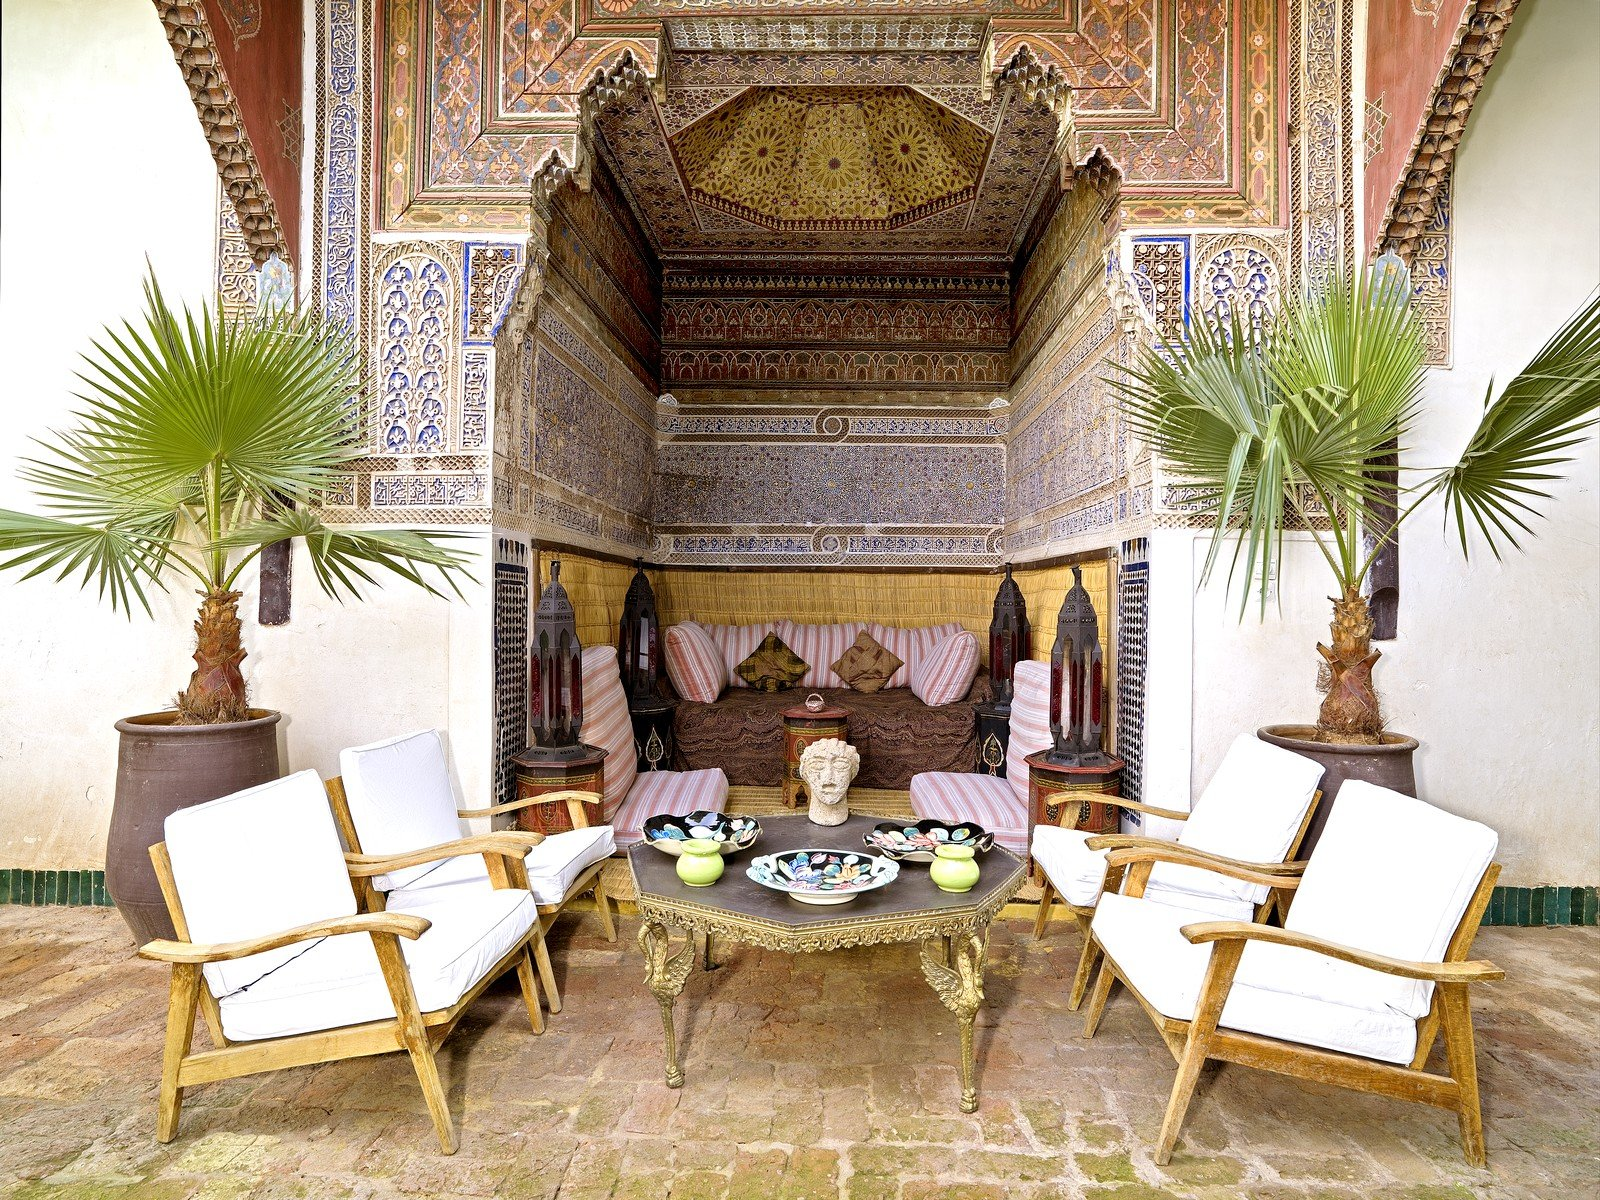 This historic riad in the heart of the great Medina of Marrakesh captures the romance of the Red City with its traditional courtyard garden and Moorish architecture.